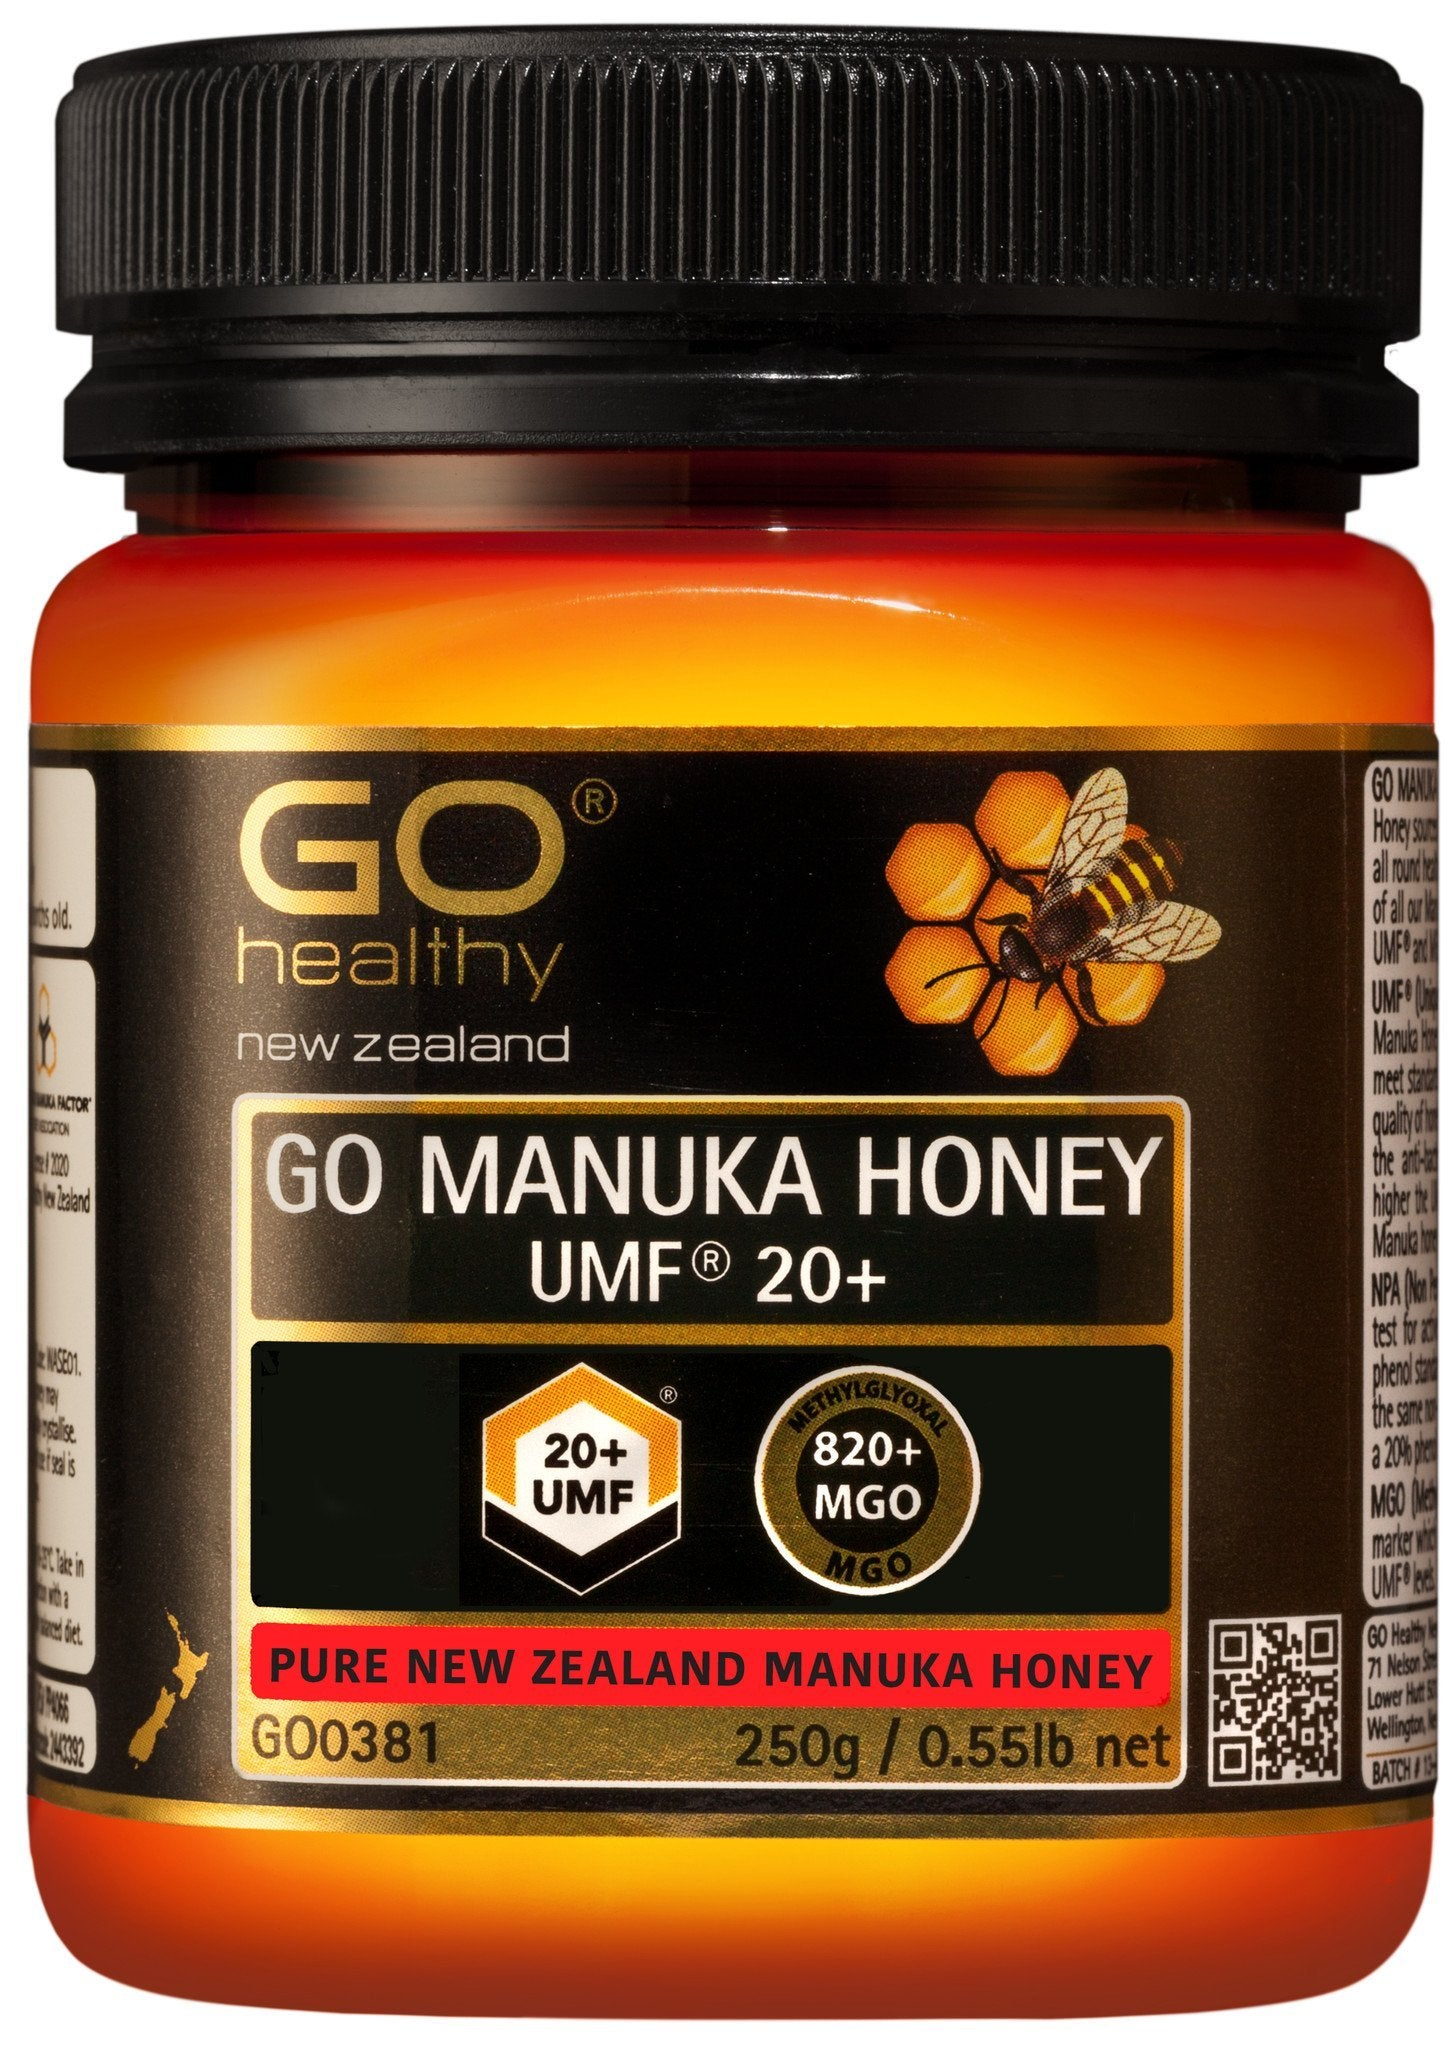 20+ UMF (820+ MGO) Go Manuka Honey 250g